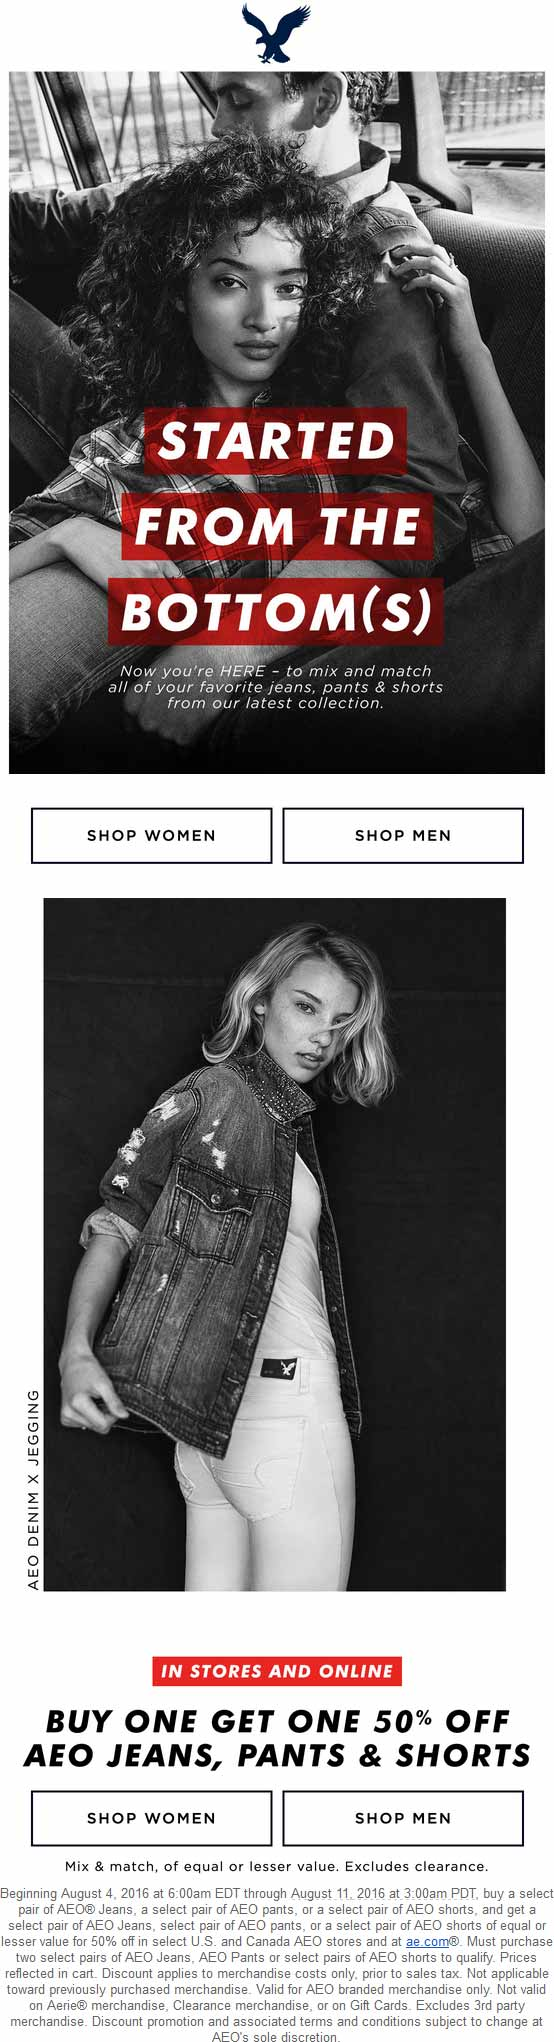 American Eagle Outfitters Coupon November 2017 Second pair jeans 50% off at American Eagle Outfitters, ditto online